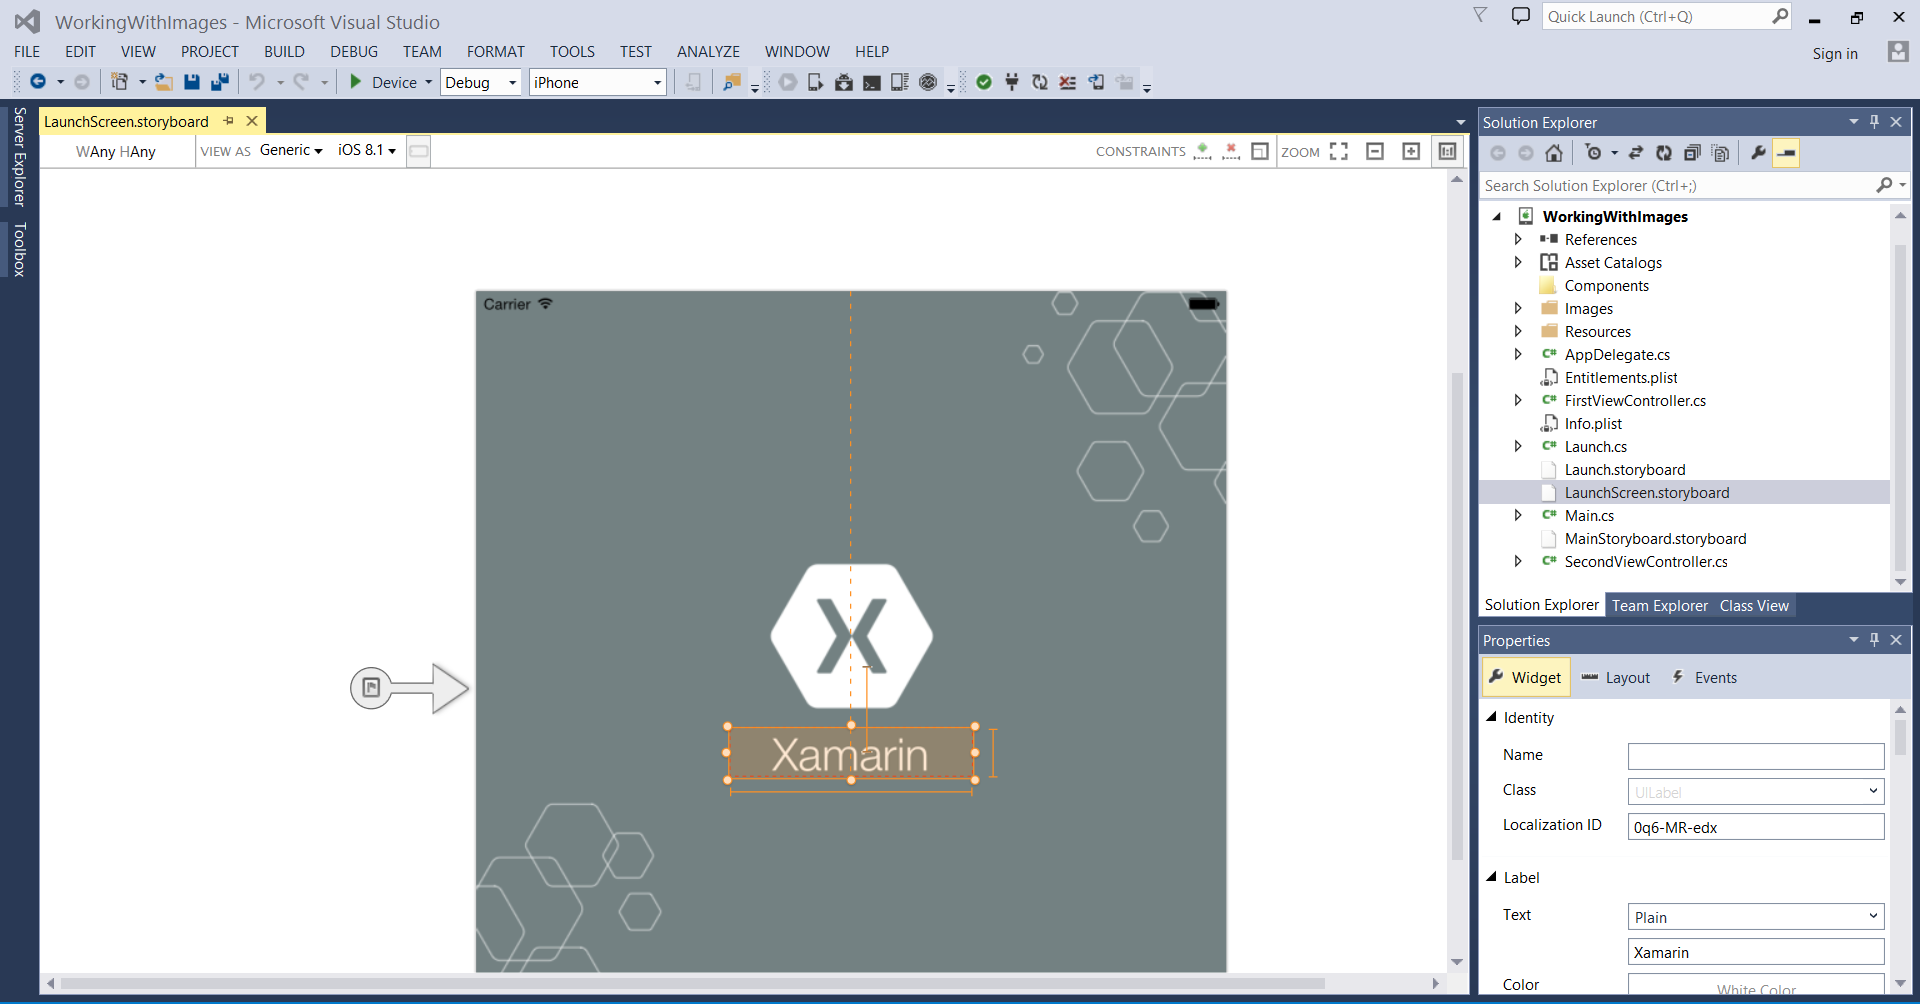 Launch Screens for Xamarin.iOS Apps - Xamarin | Microsoft Docs